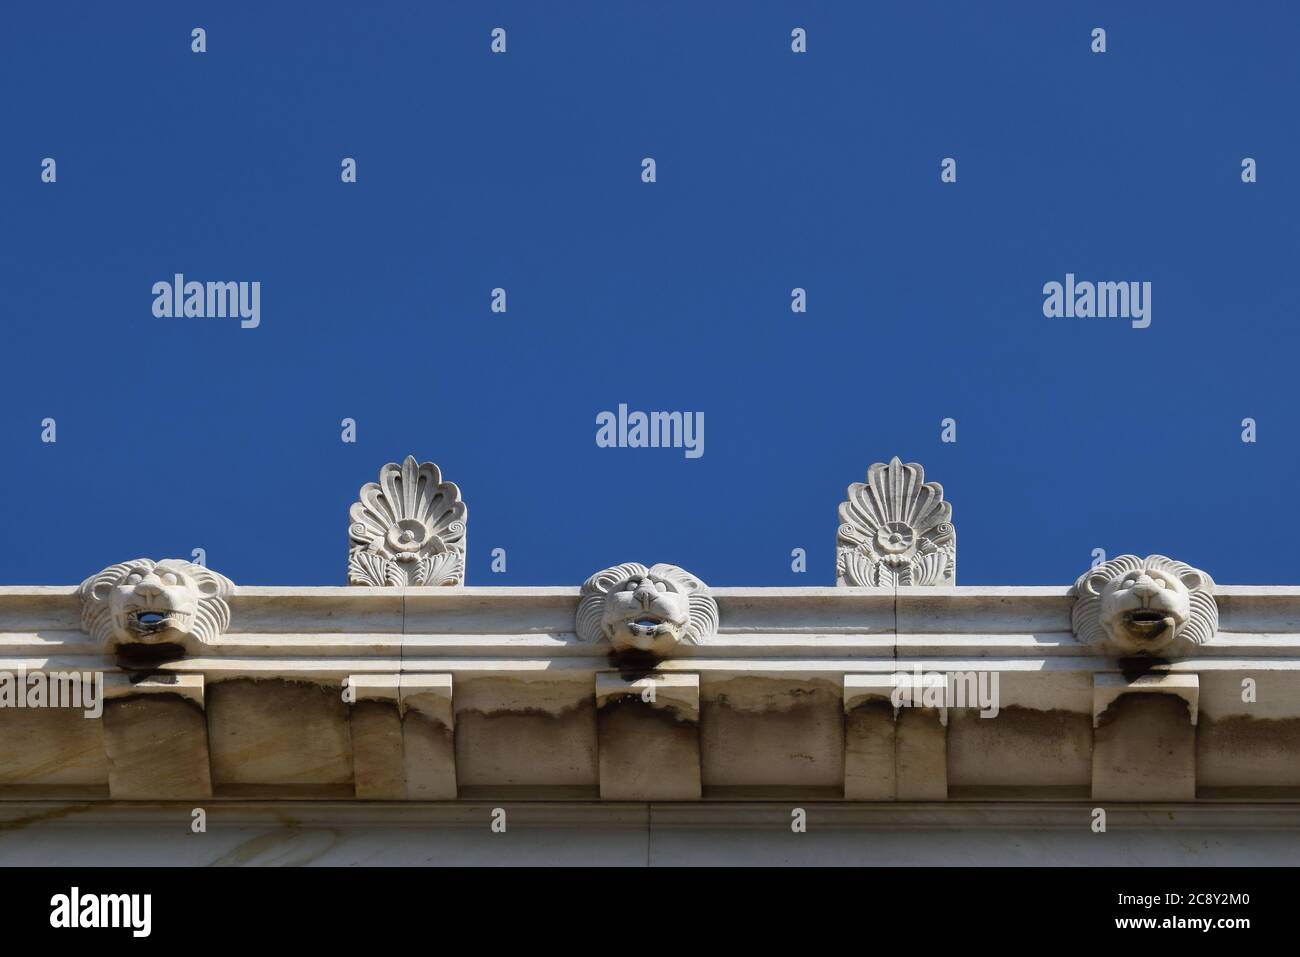 Palmette antefix ornaments and lion head drain water spouts on the roof of Stoa Attalos in the Ancient Agora of Athens, Greece. Architectural detail. Stock Photo